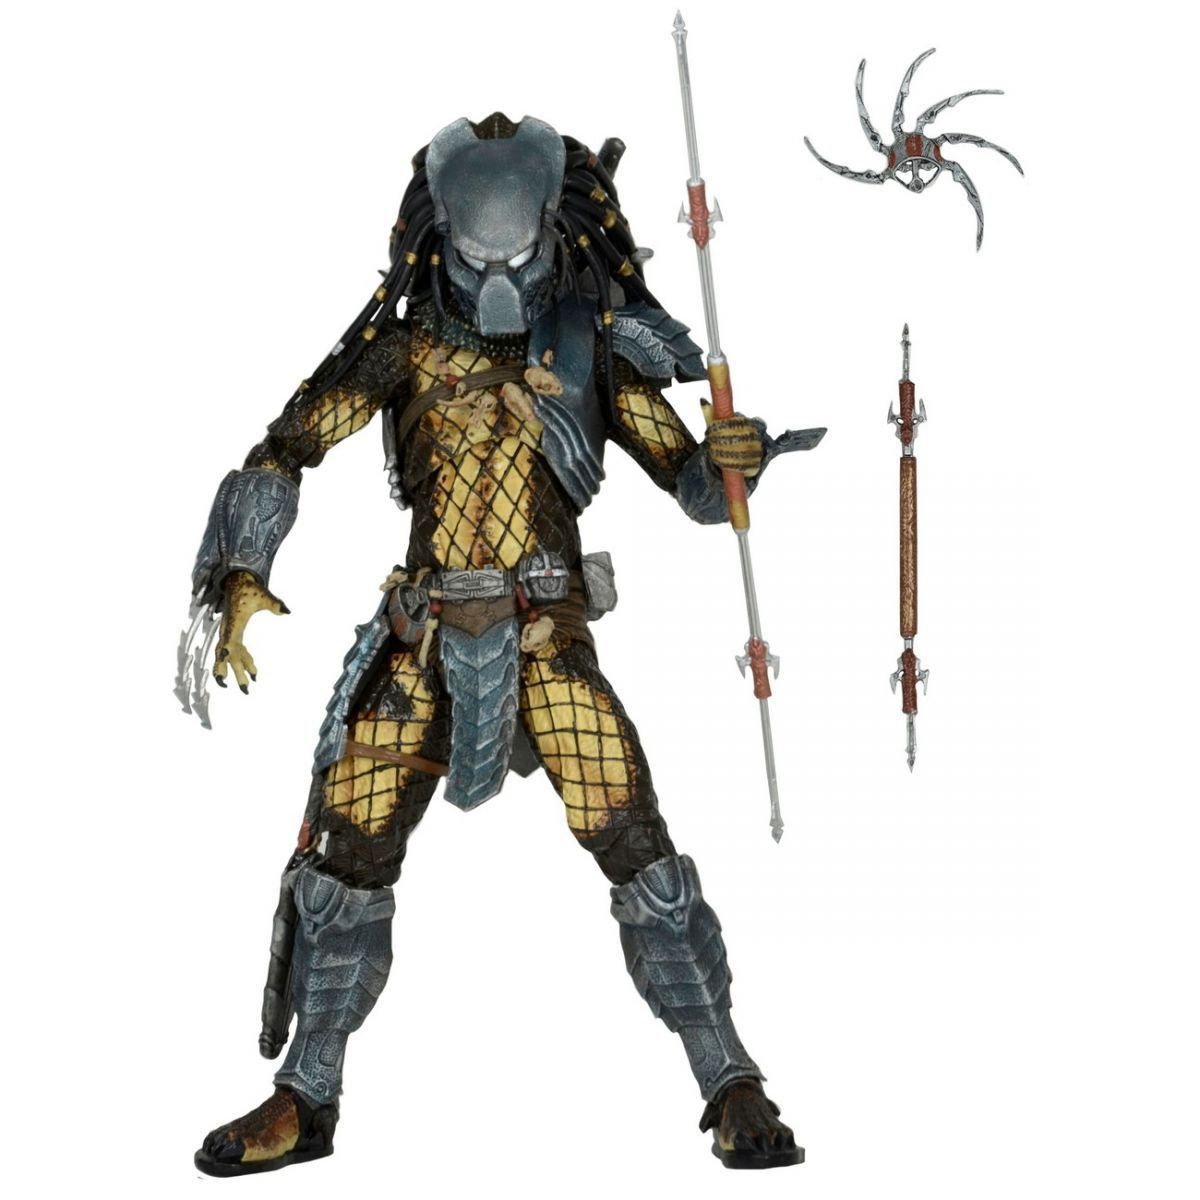 AvP (Alien vs Predador / Predator): Ancient Warrior Predador / Predator Series 15 Escala 1/10 - NECA